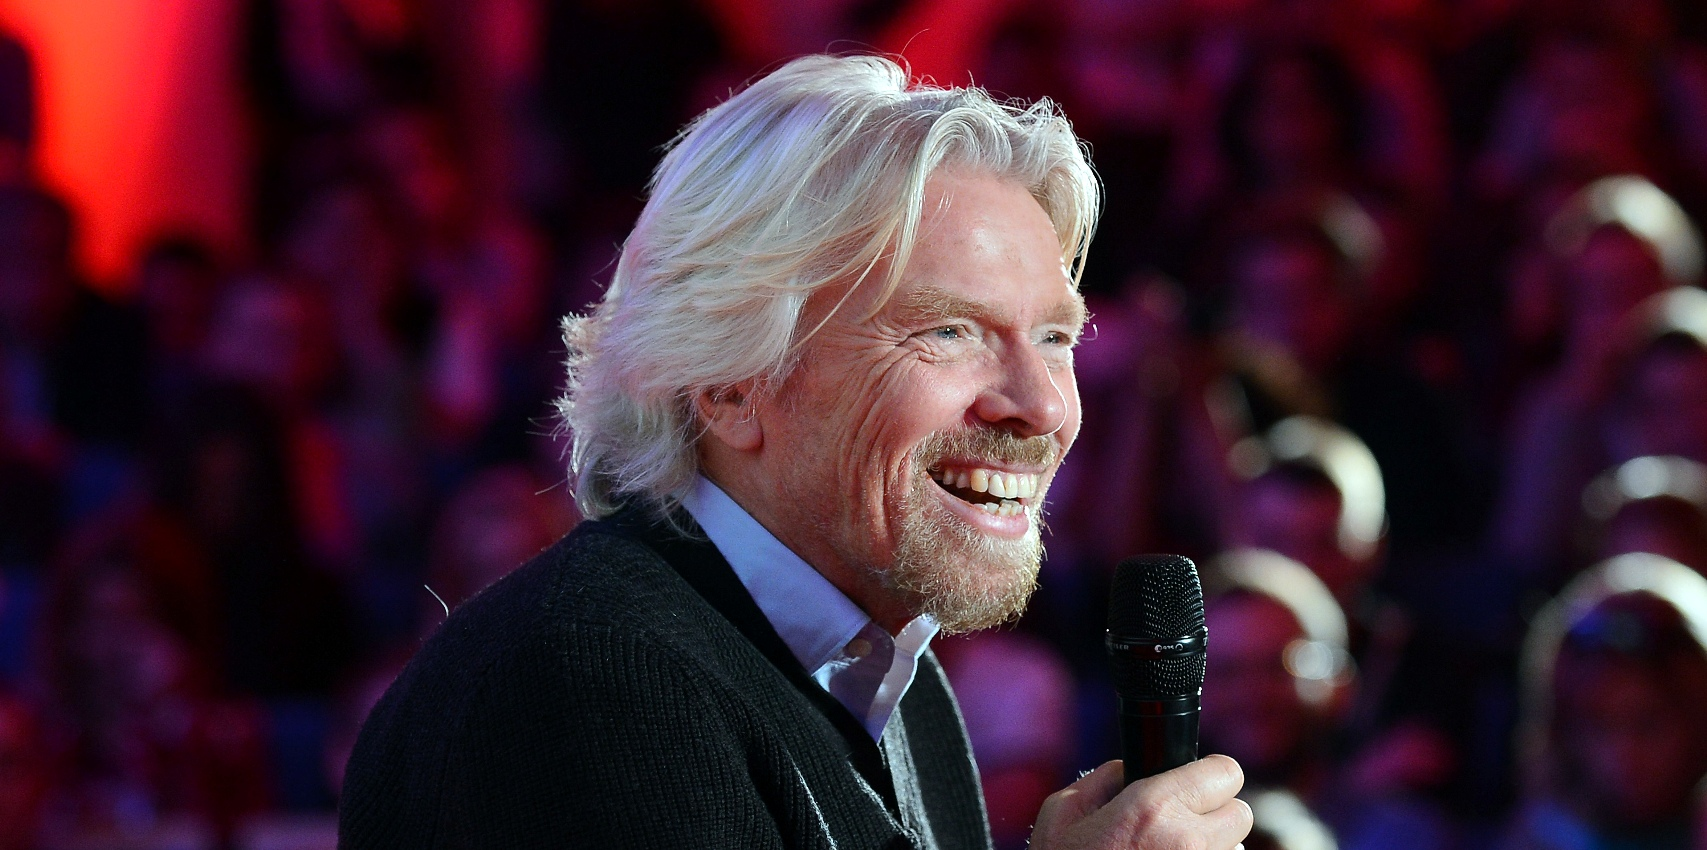 Richard Branson, chairman and founder of Virgin Group attends a meeting with students at Warsaw university on October 24, 2012. AFP PHOTO / JANEK SKARZYNSKI (Photo credit should read JANEK SKARZYNSKI/AFP/Getty Images)